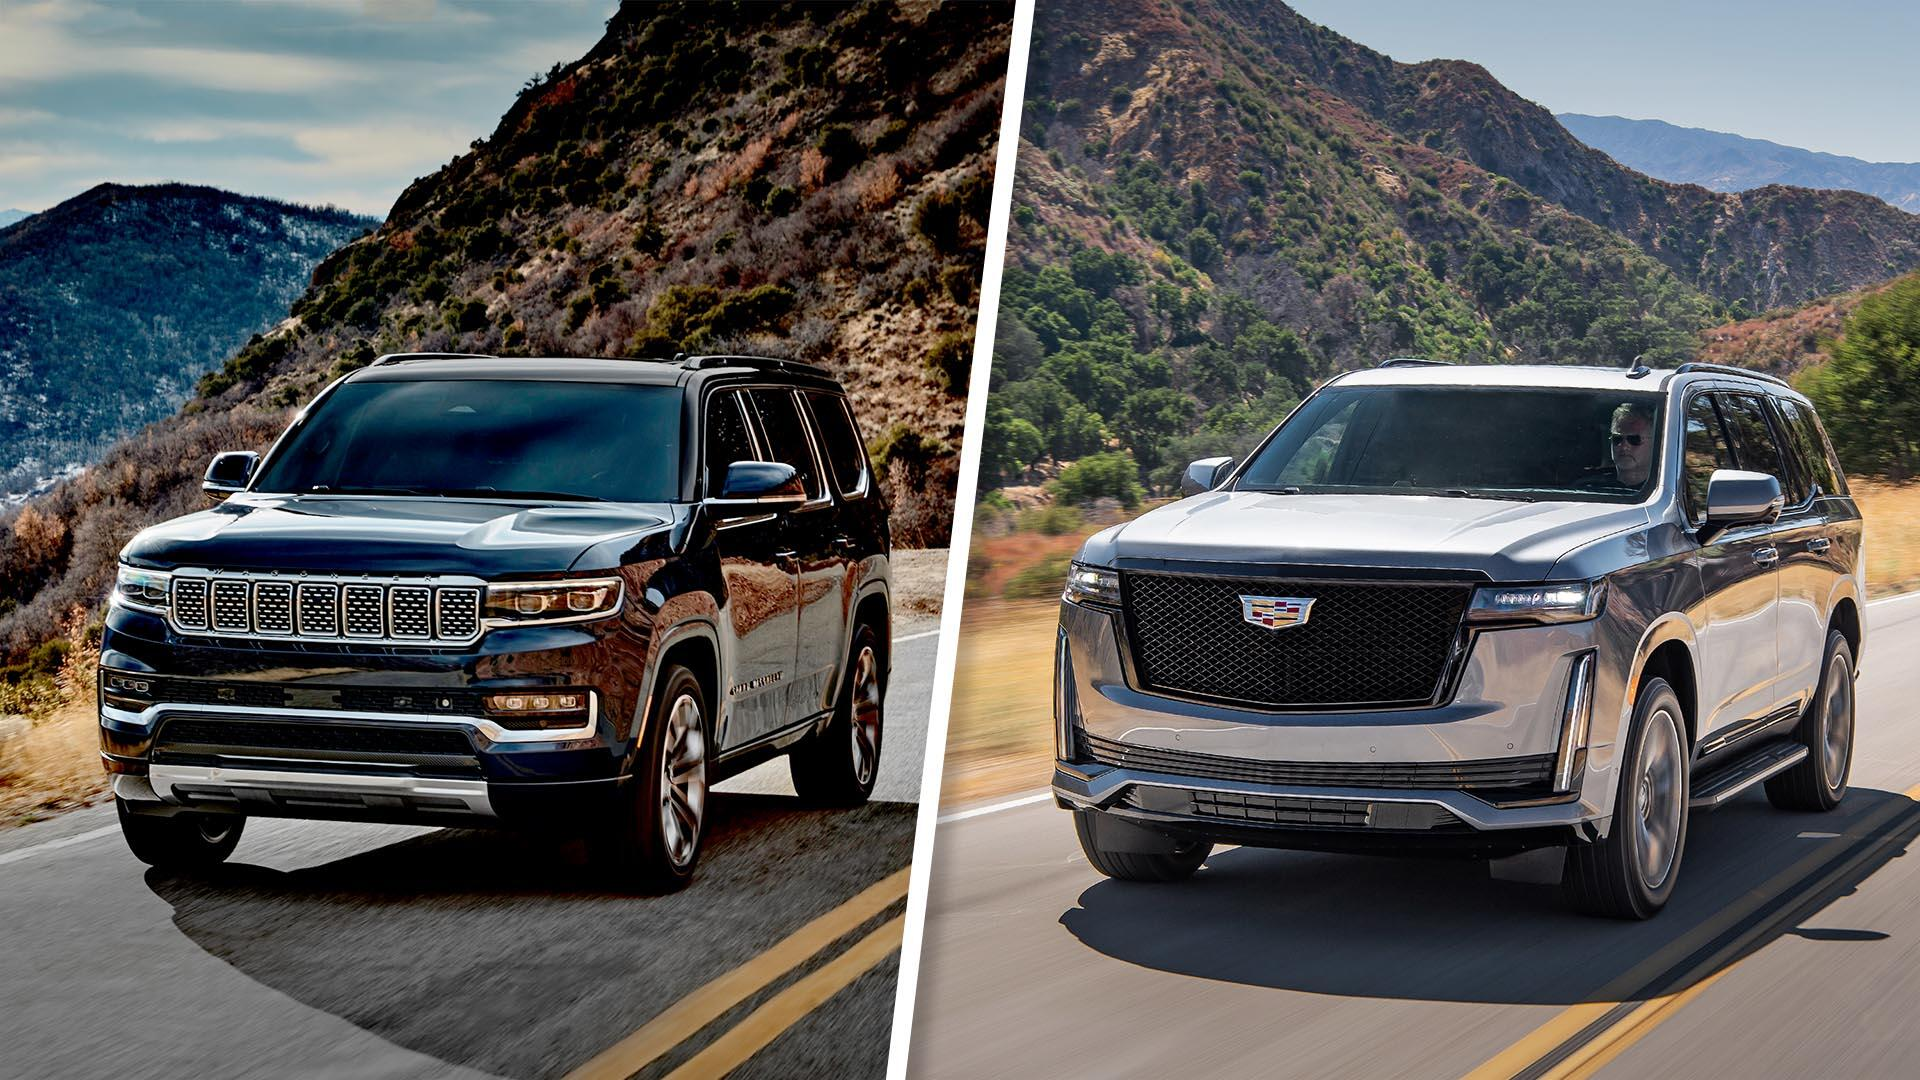 Video: 2022 Jeep Grand Wagoneer vs. Cadillac Escalade: Full-size luxury compared